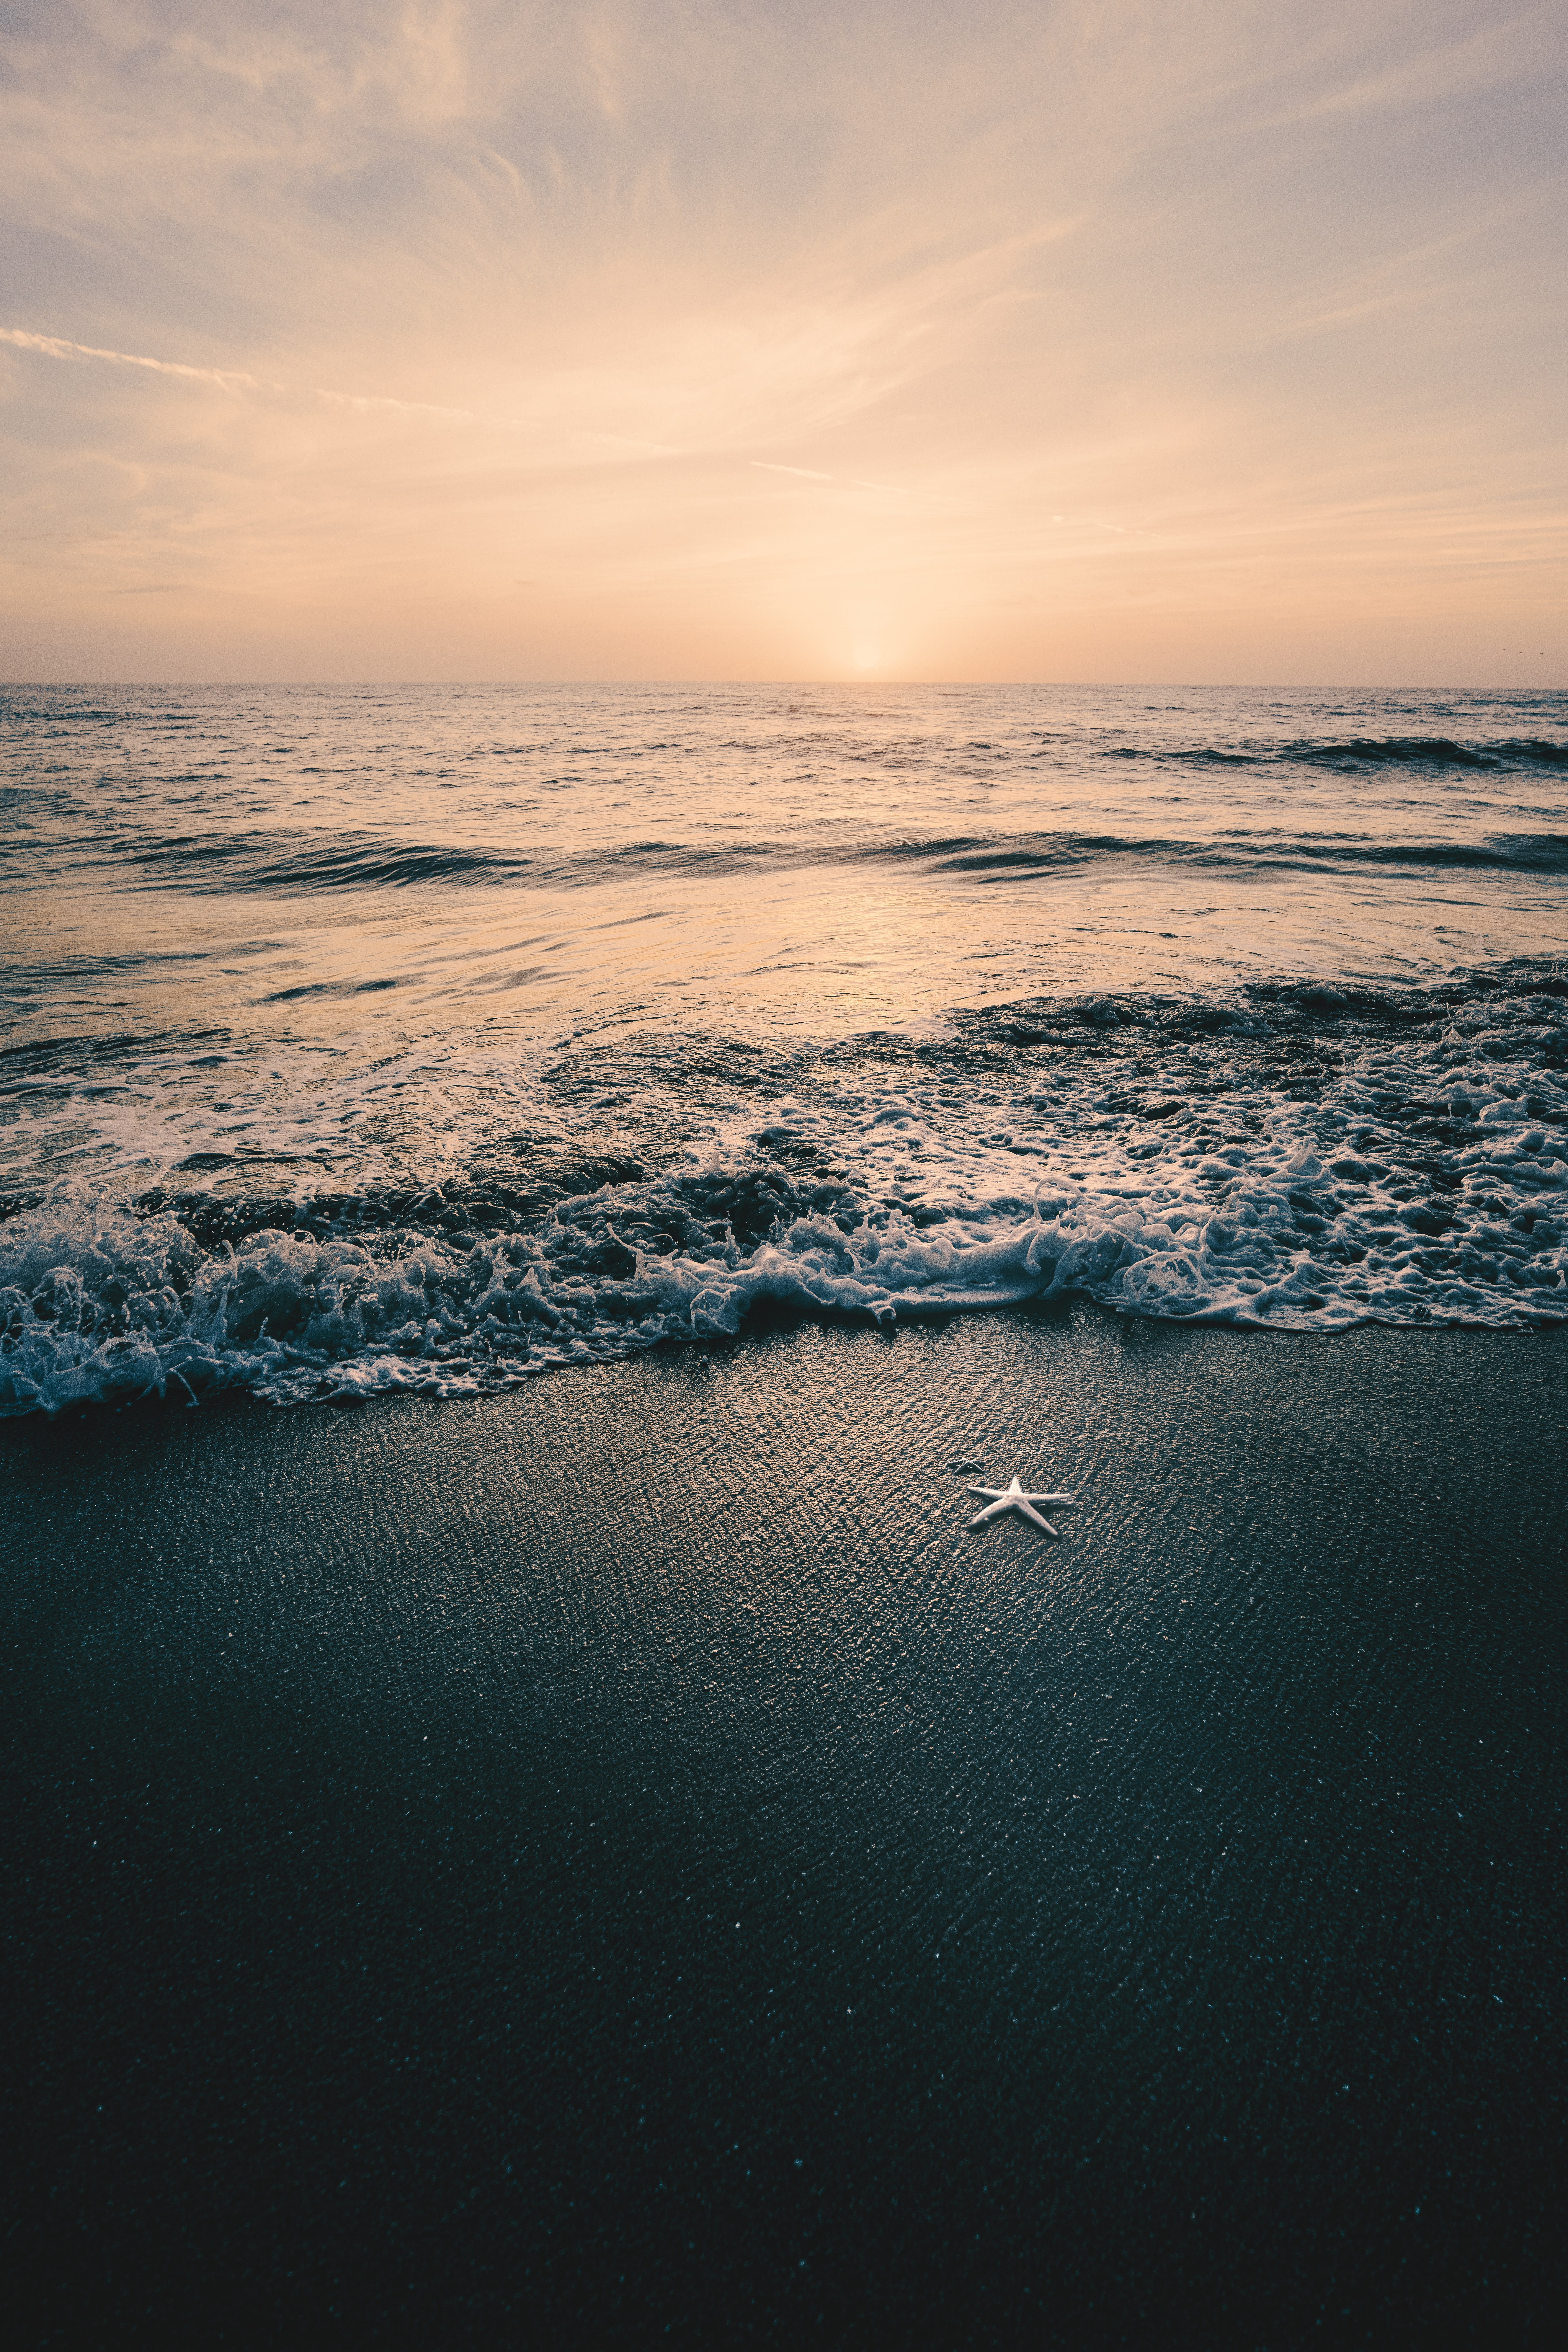 71532 download wallpaper Nature, Sea, Beach, Starfish, Dusk, Twilight, Waves screensavers and pictures for free